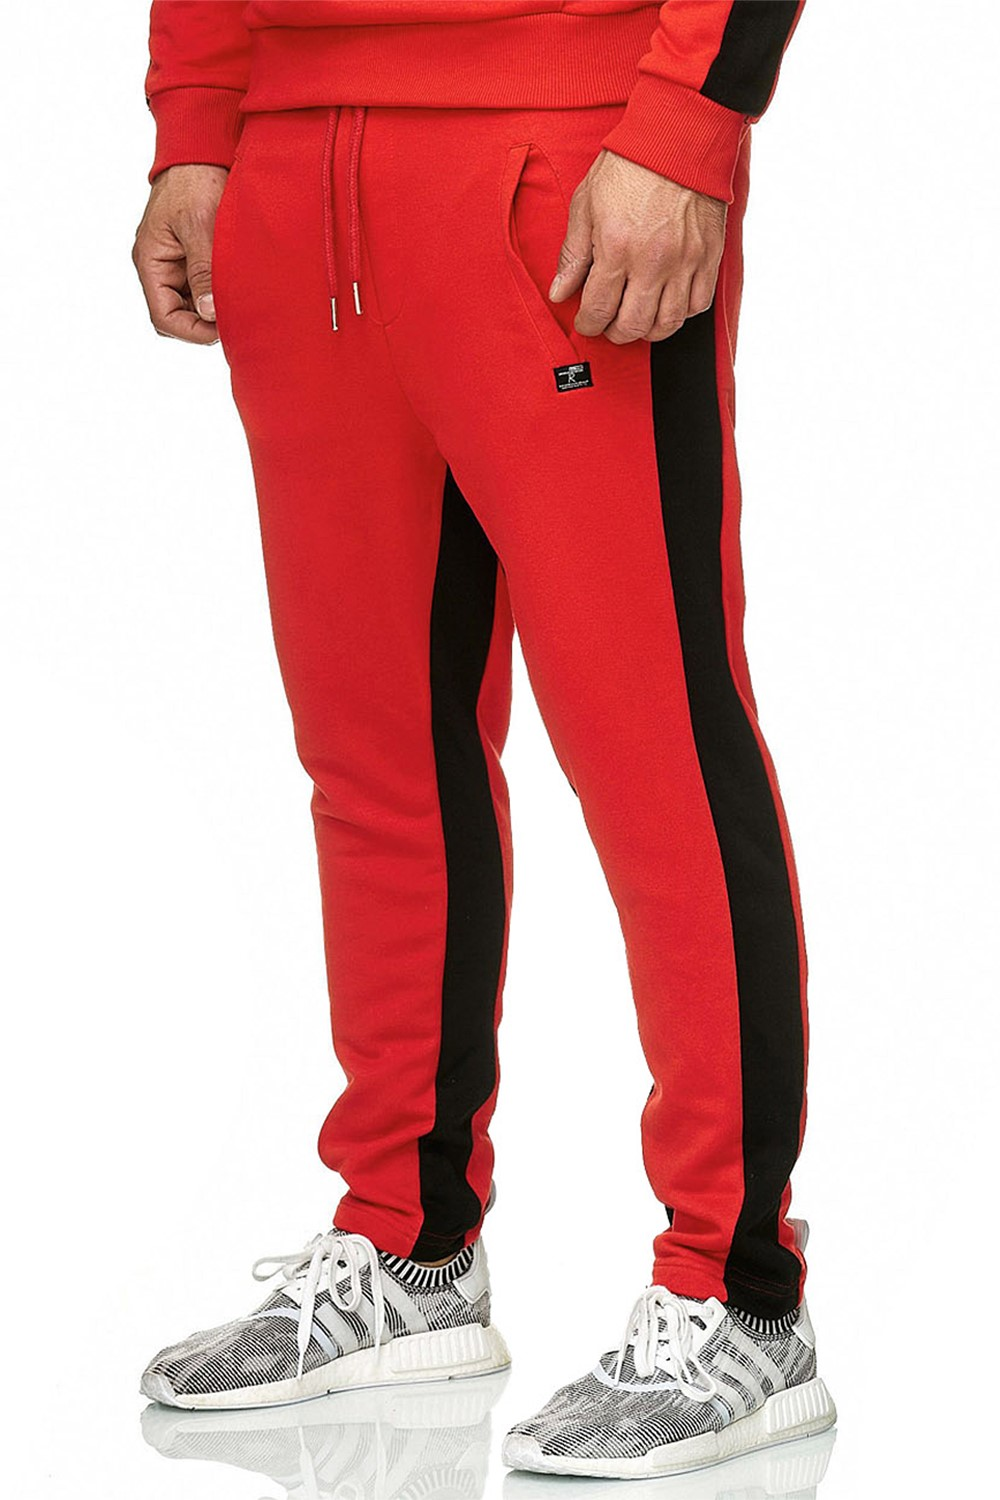 Redbridge-senores-regular-fit-chandal-fitness-sueter-aerobic-pantalones miniatura 22